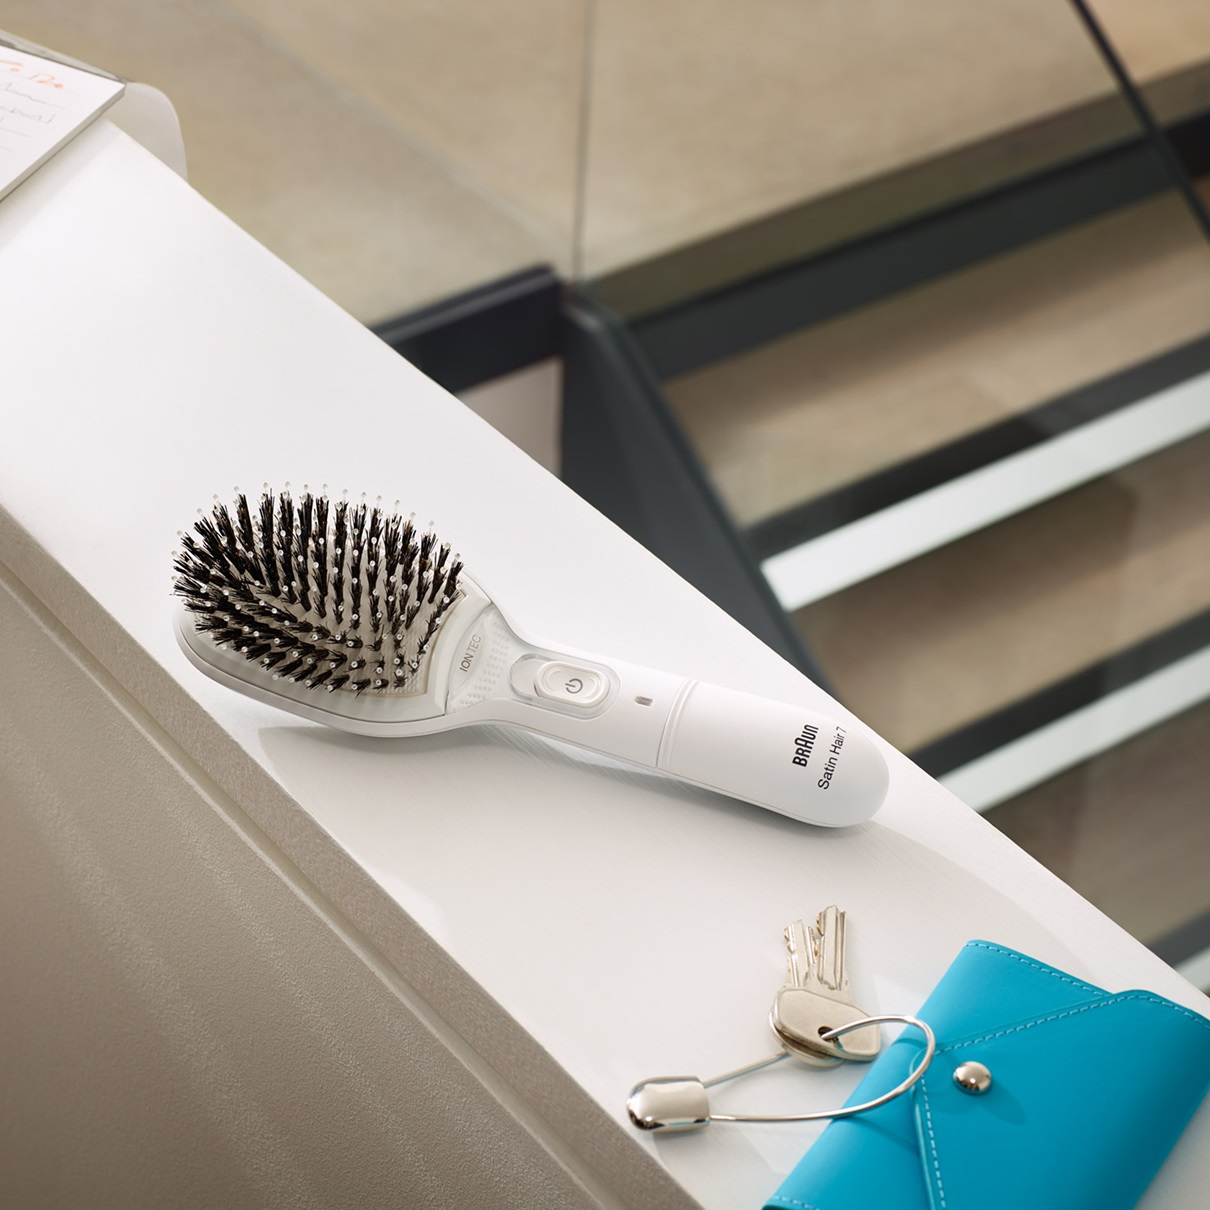 Braun Satin Hair 7 Brush BR 750 lifestyle